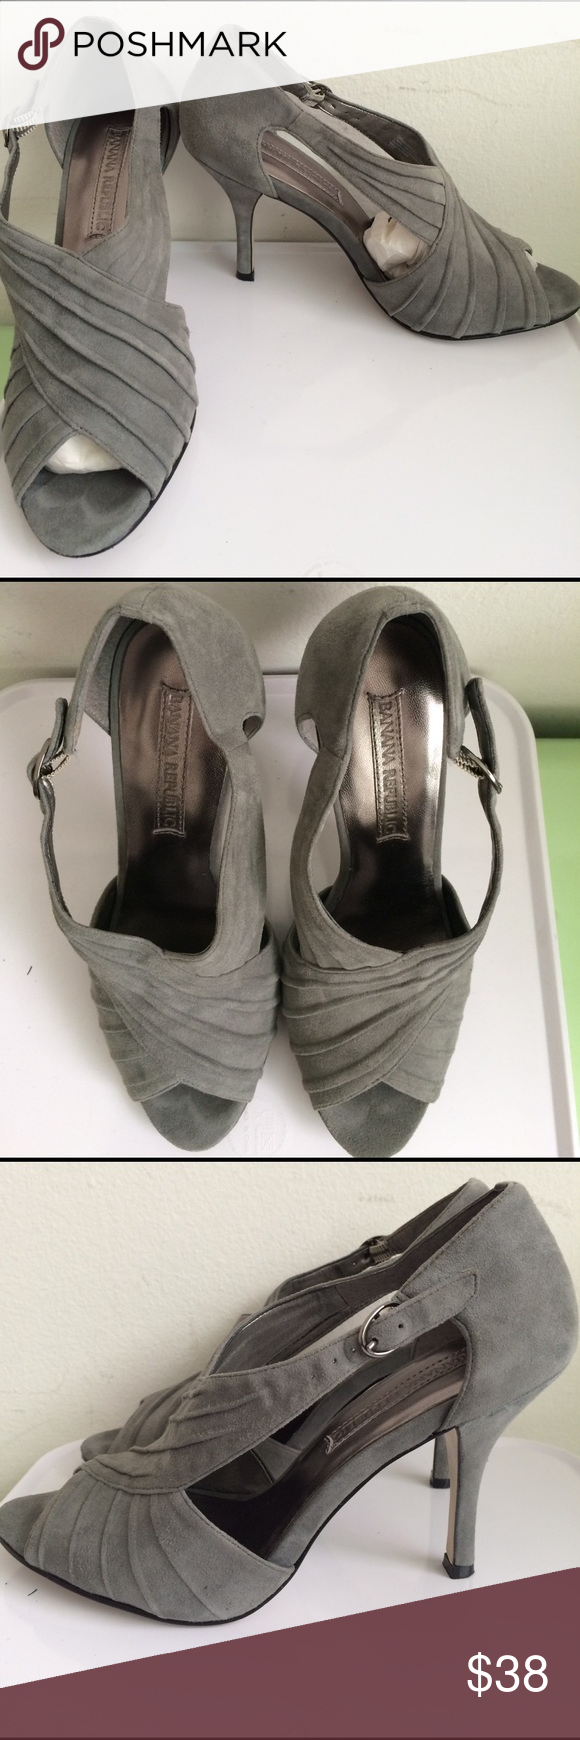 "Banana Republic Gray Suede sexy heels Size 6 Banana Republic Gray Suede sexy heels. Peep toe. Adjustable ankle strap. Cushioned toe. 3.5"" suede heel. Super clean. Litter wear as you can see. EUC Size 6 Banana Republic Shoes Heels"